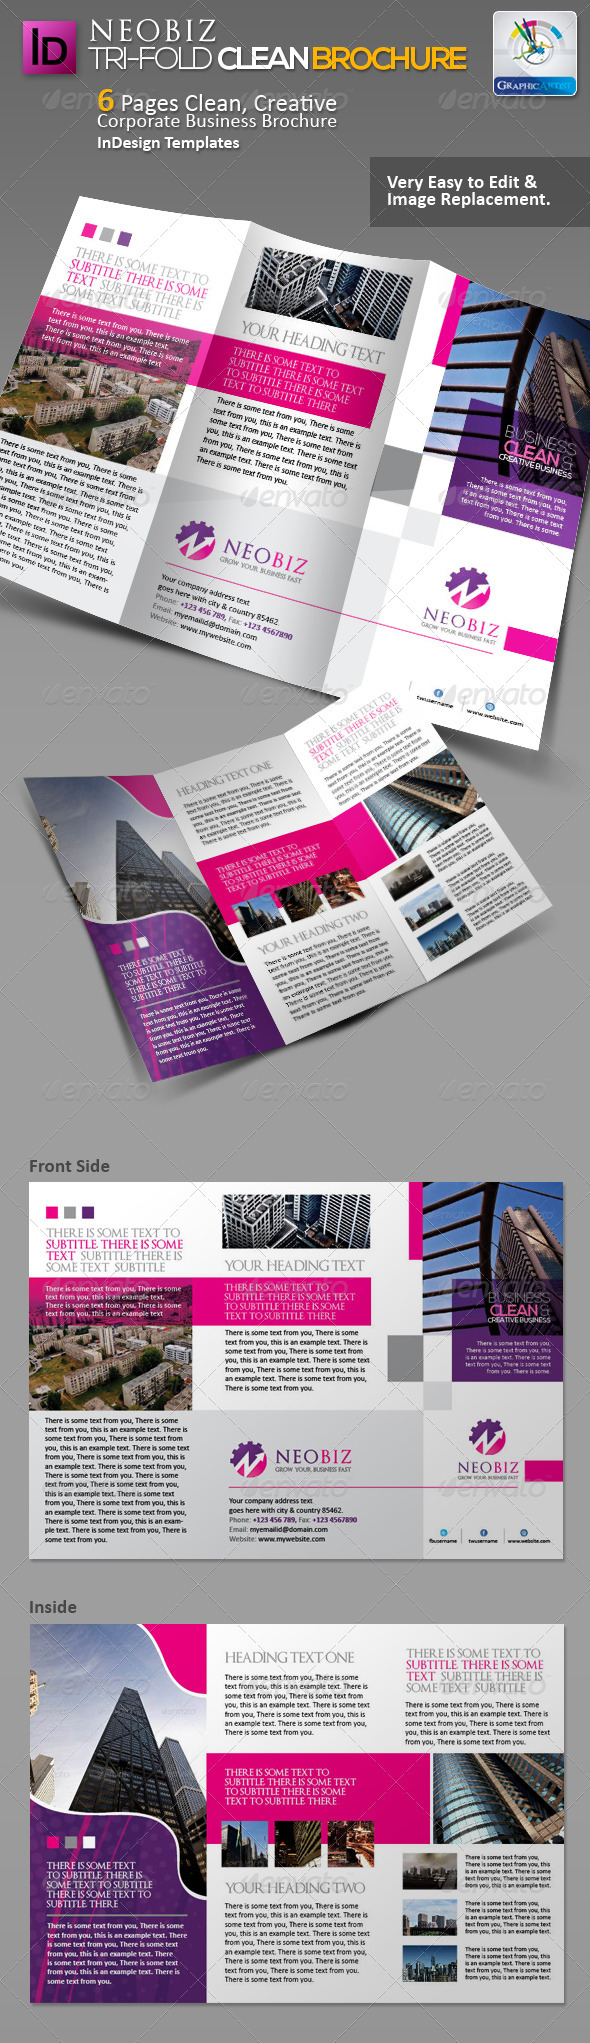 GraphicRiver NeoBiz Tri-fold Clean Brochure 3365422